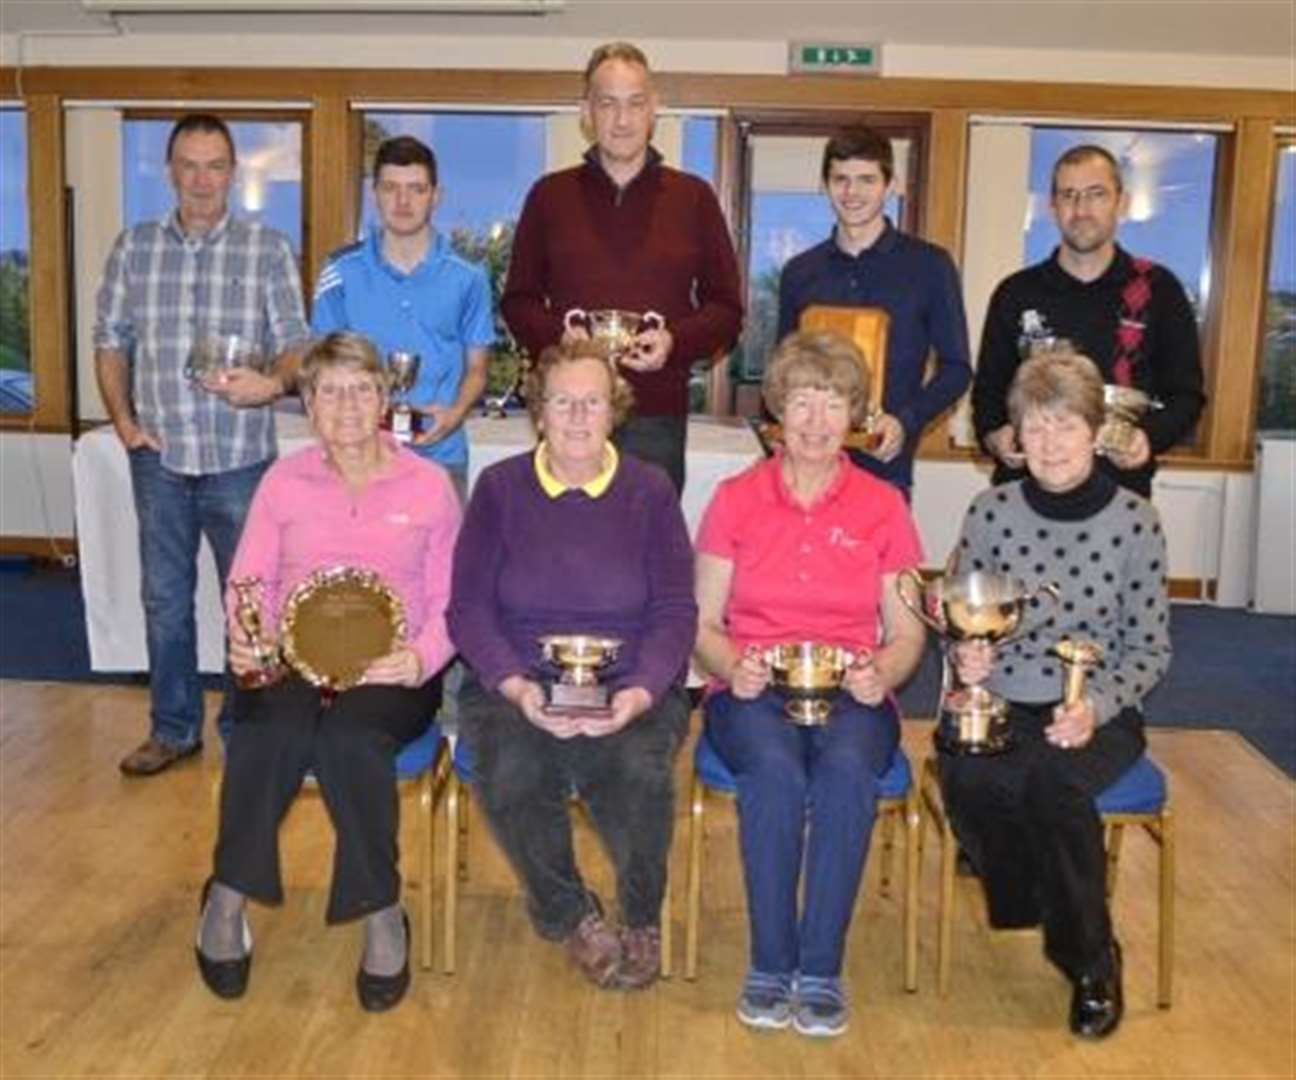 Alness Golf Club prize guys in the frame